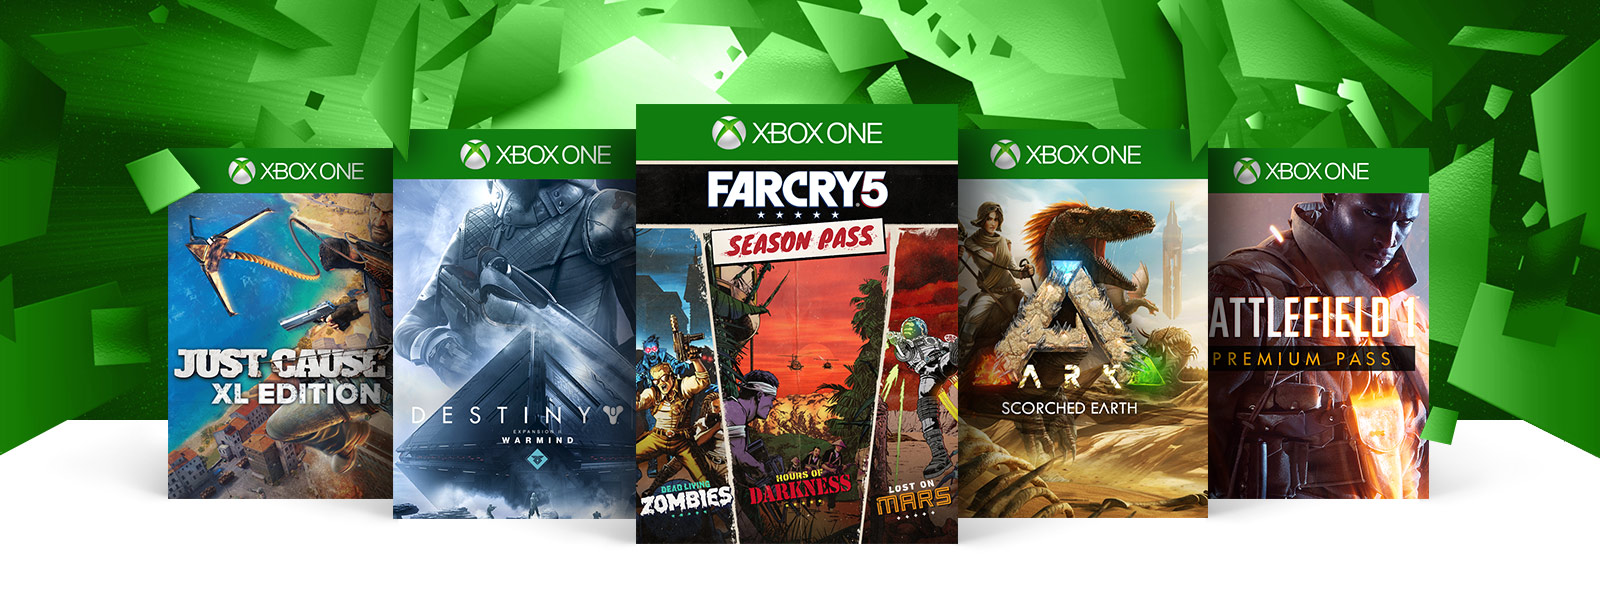 Just Cause 3 Destiny 2 Farcry Season Pass Ark Survival and Battlefield 1 boxshots